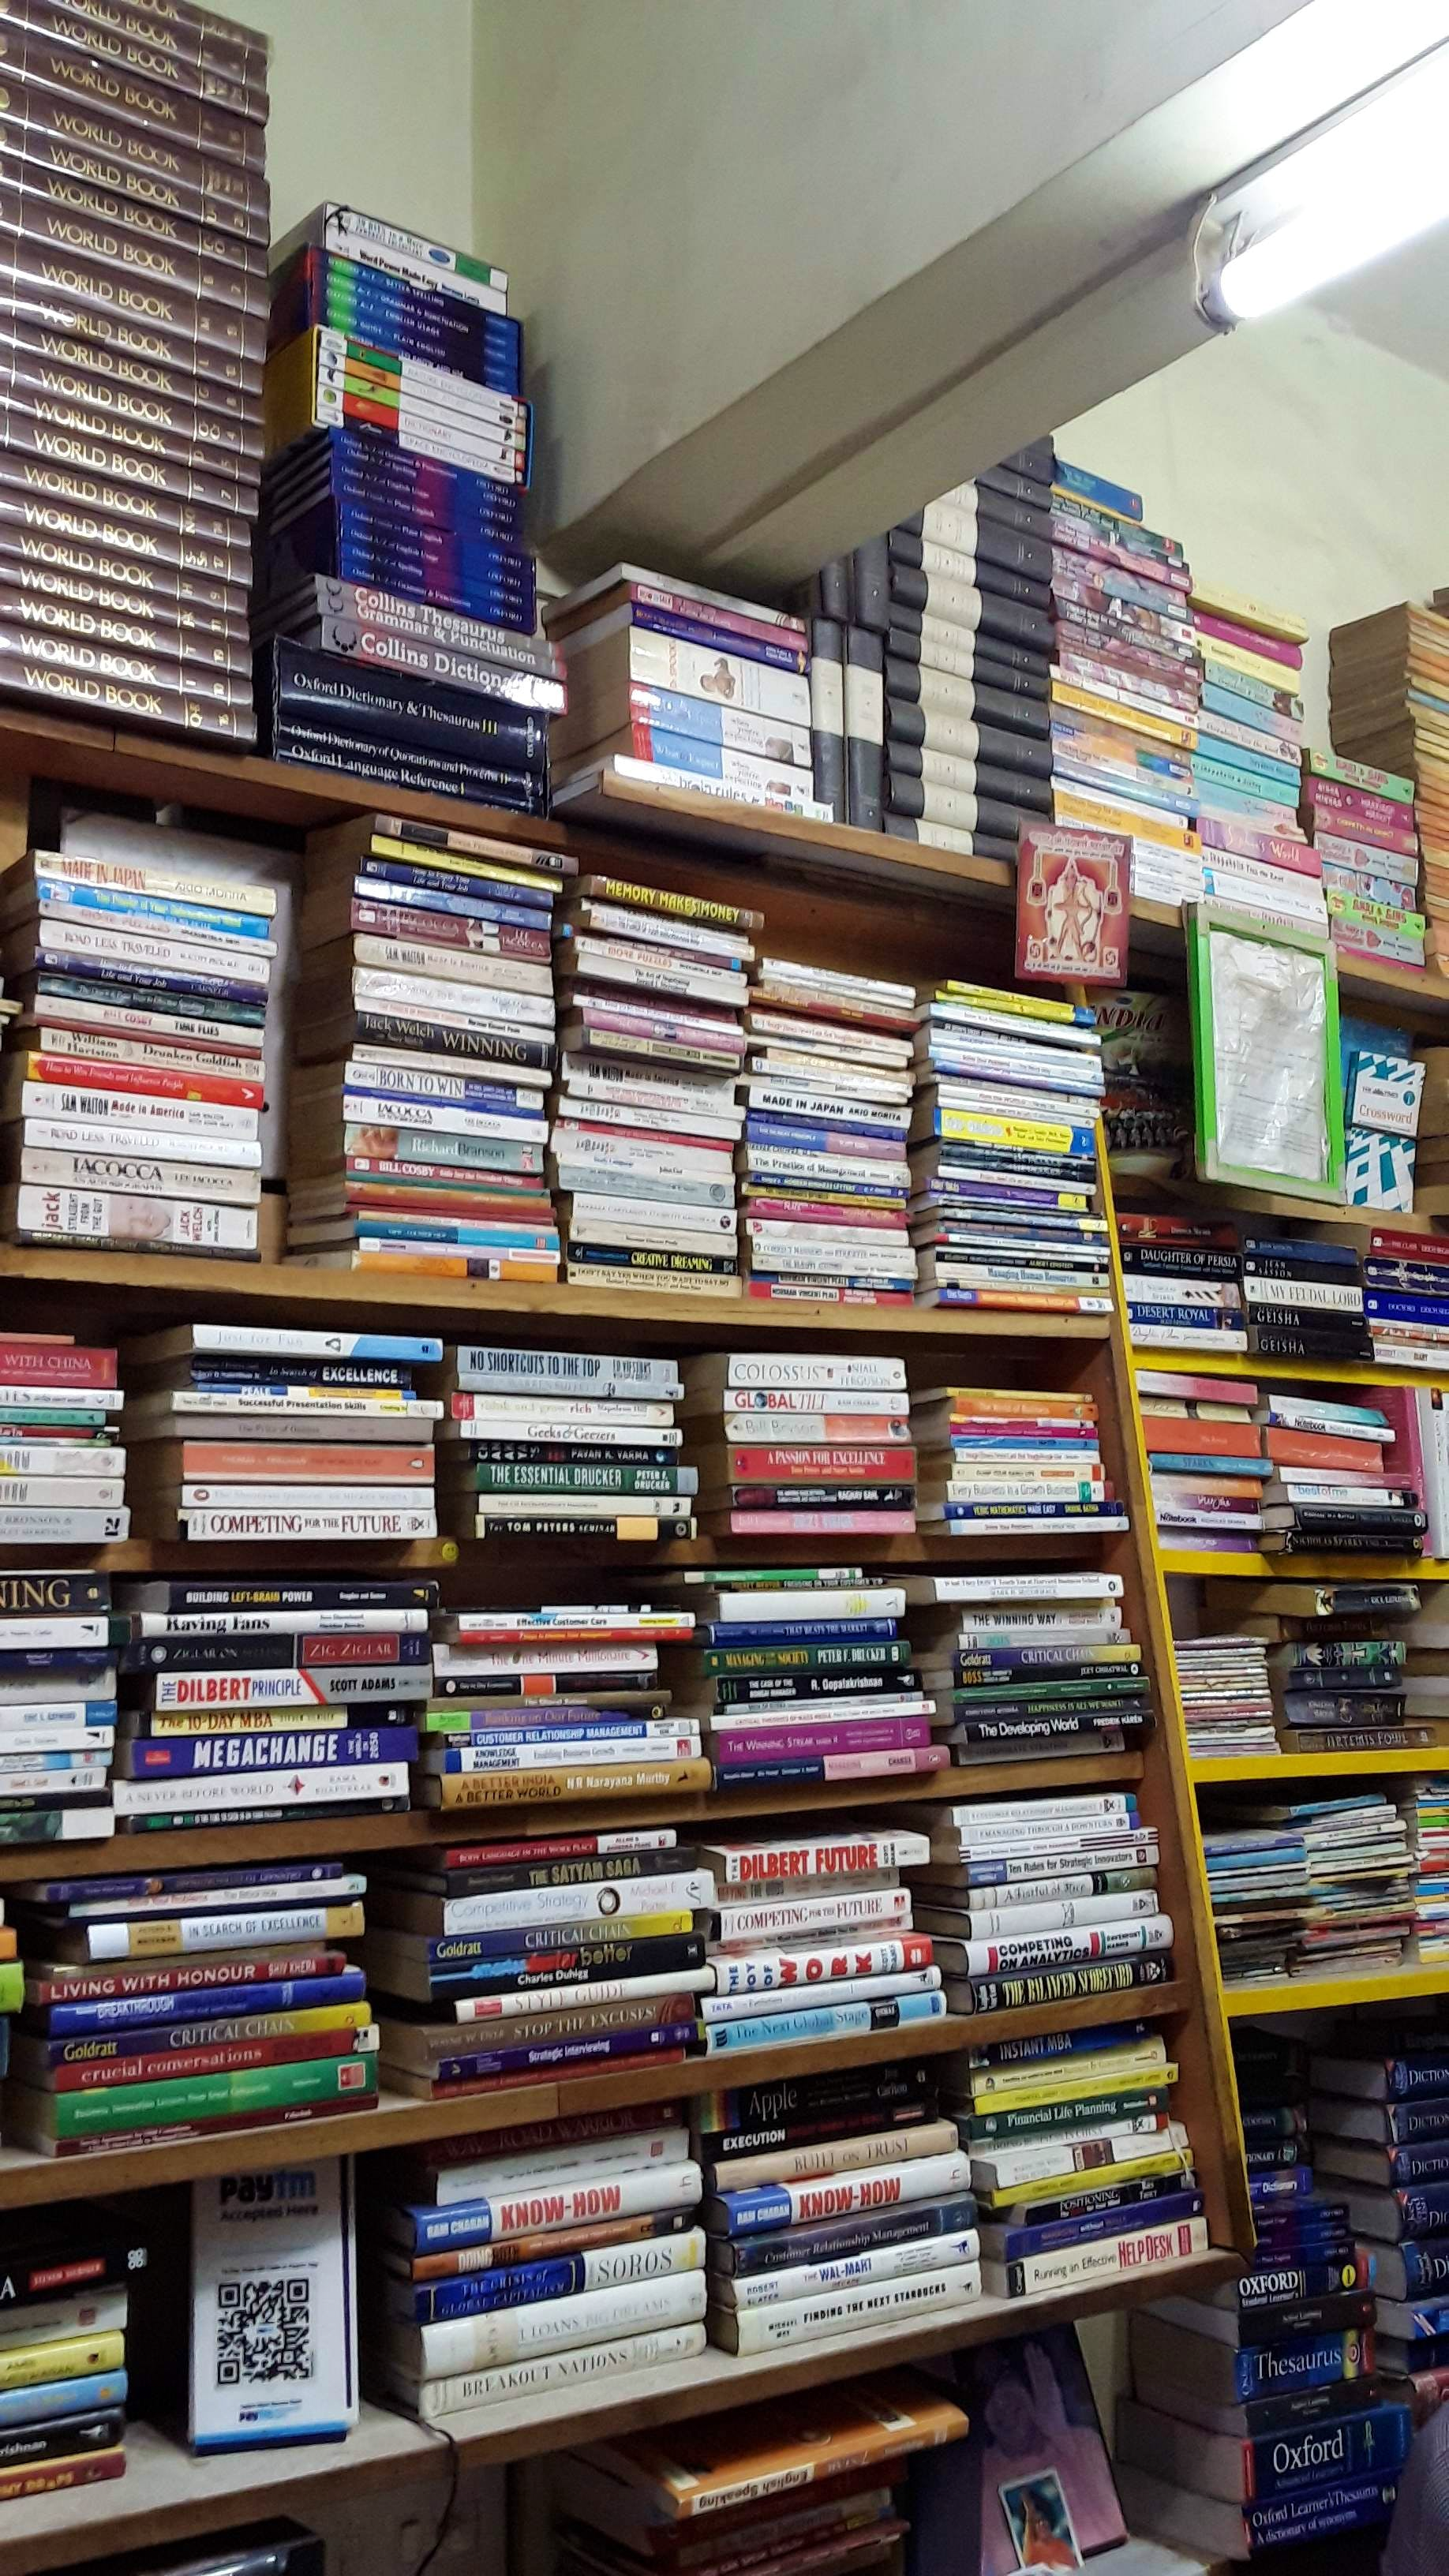 Book,Retail,Bookselling,Publication,Building,Inventory,Library